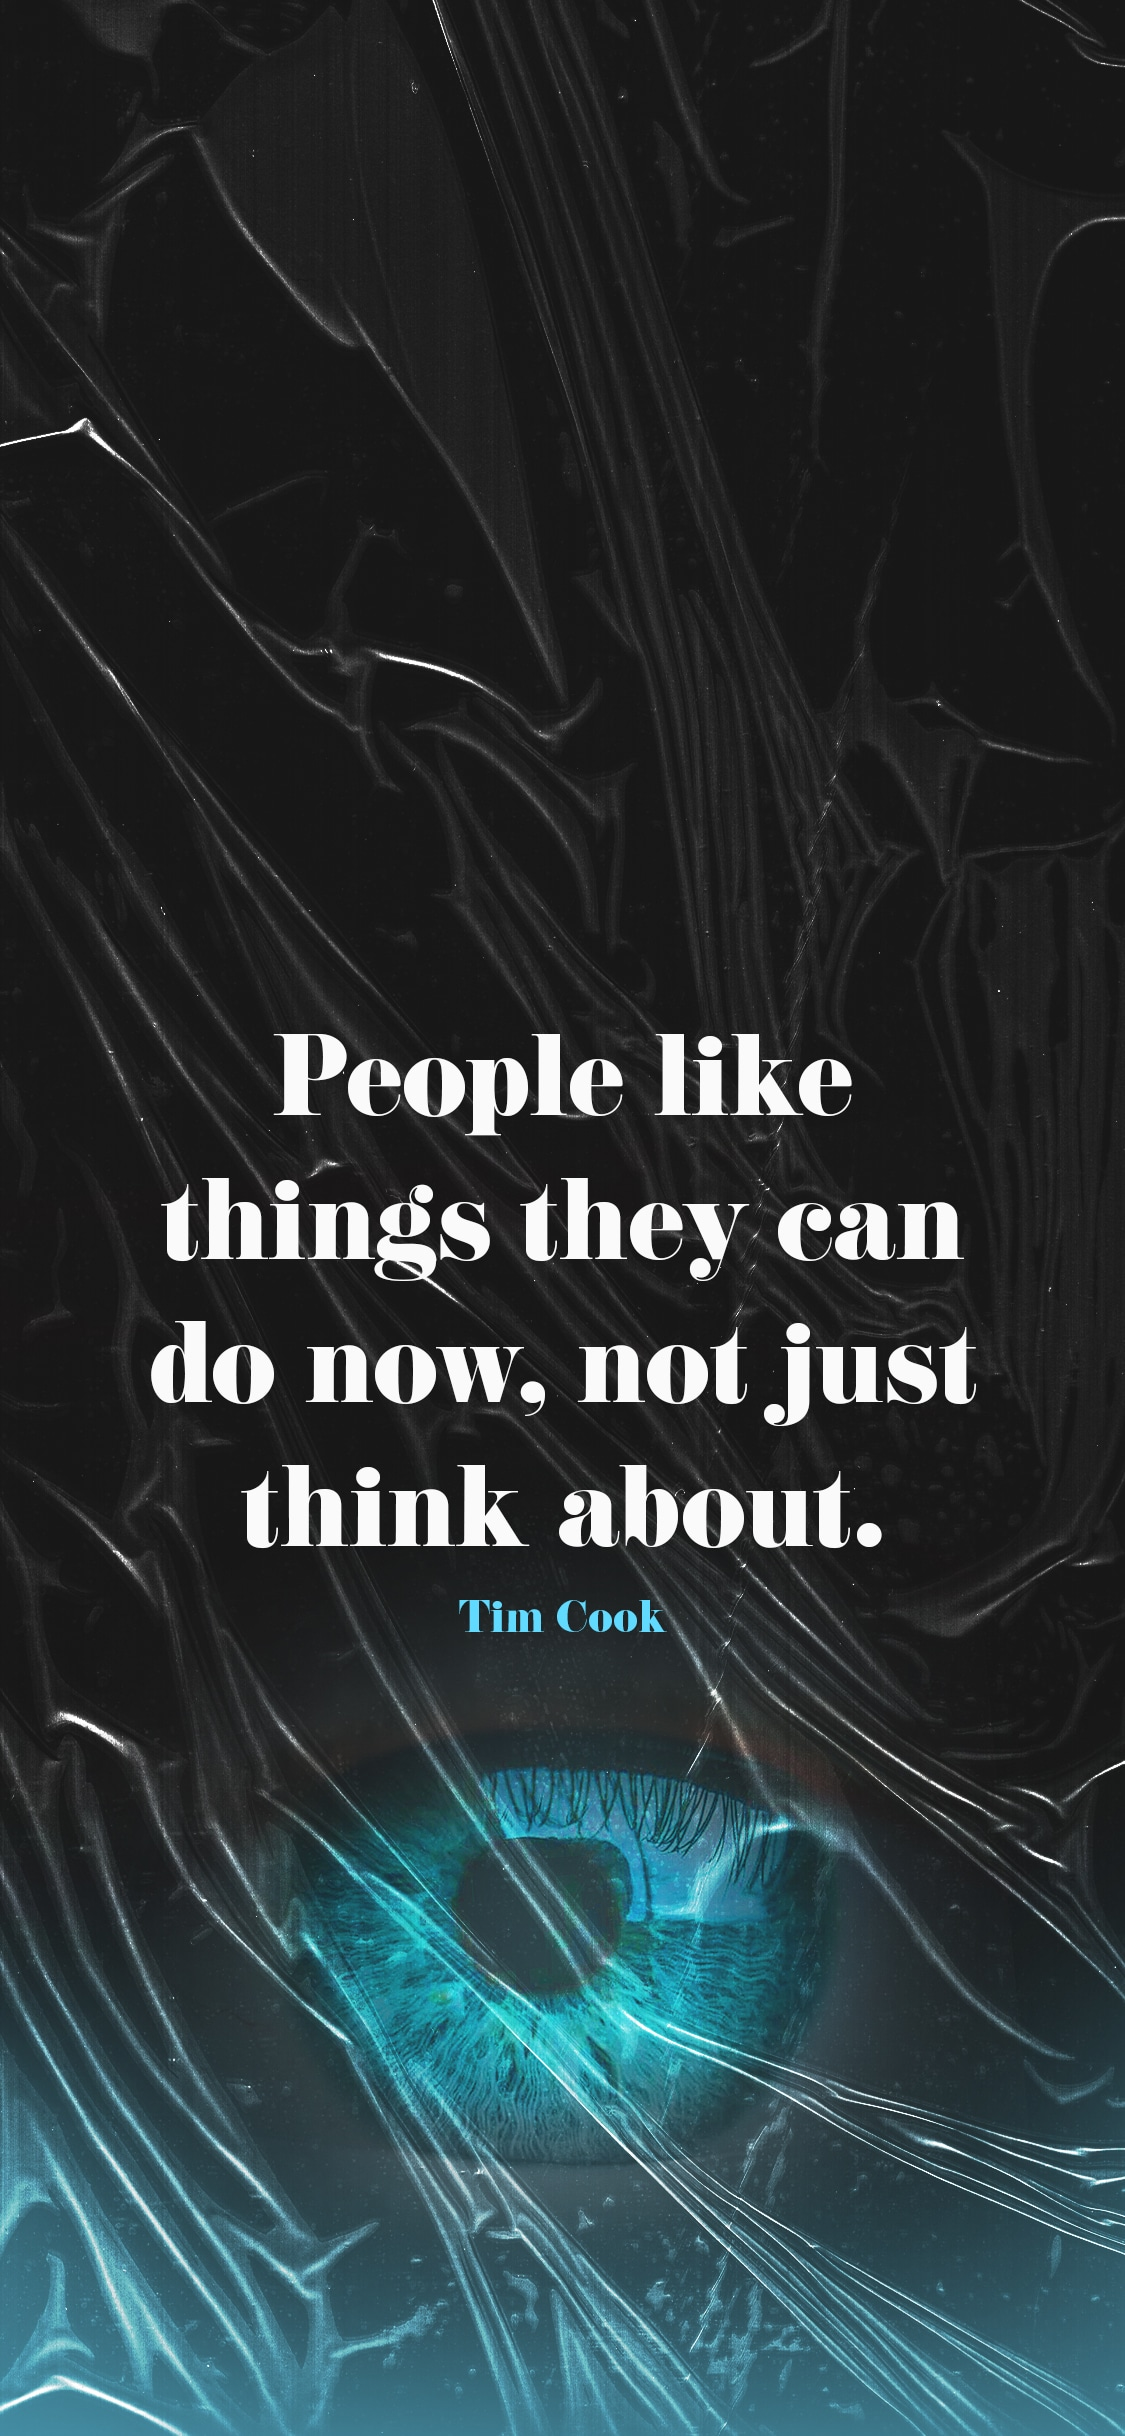 Tim Cook quote 9